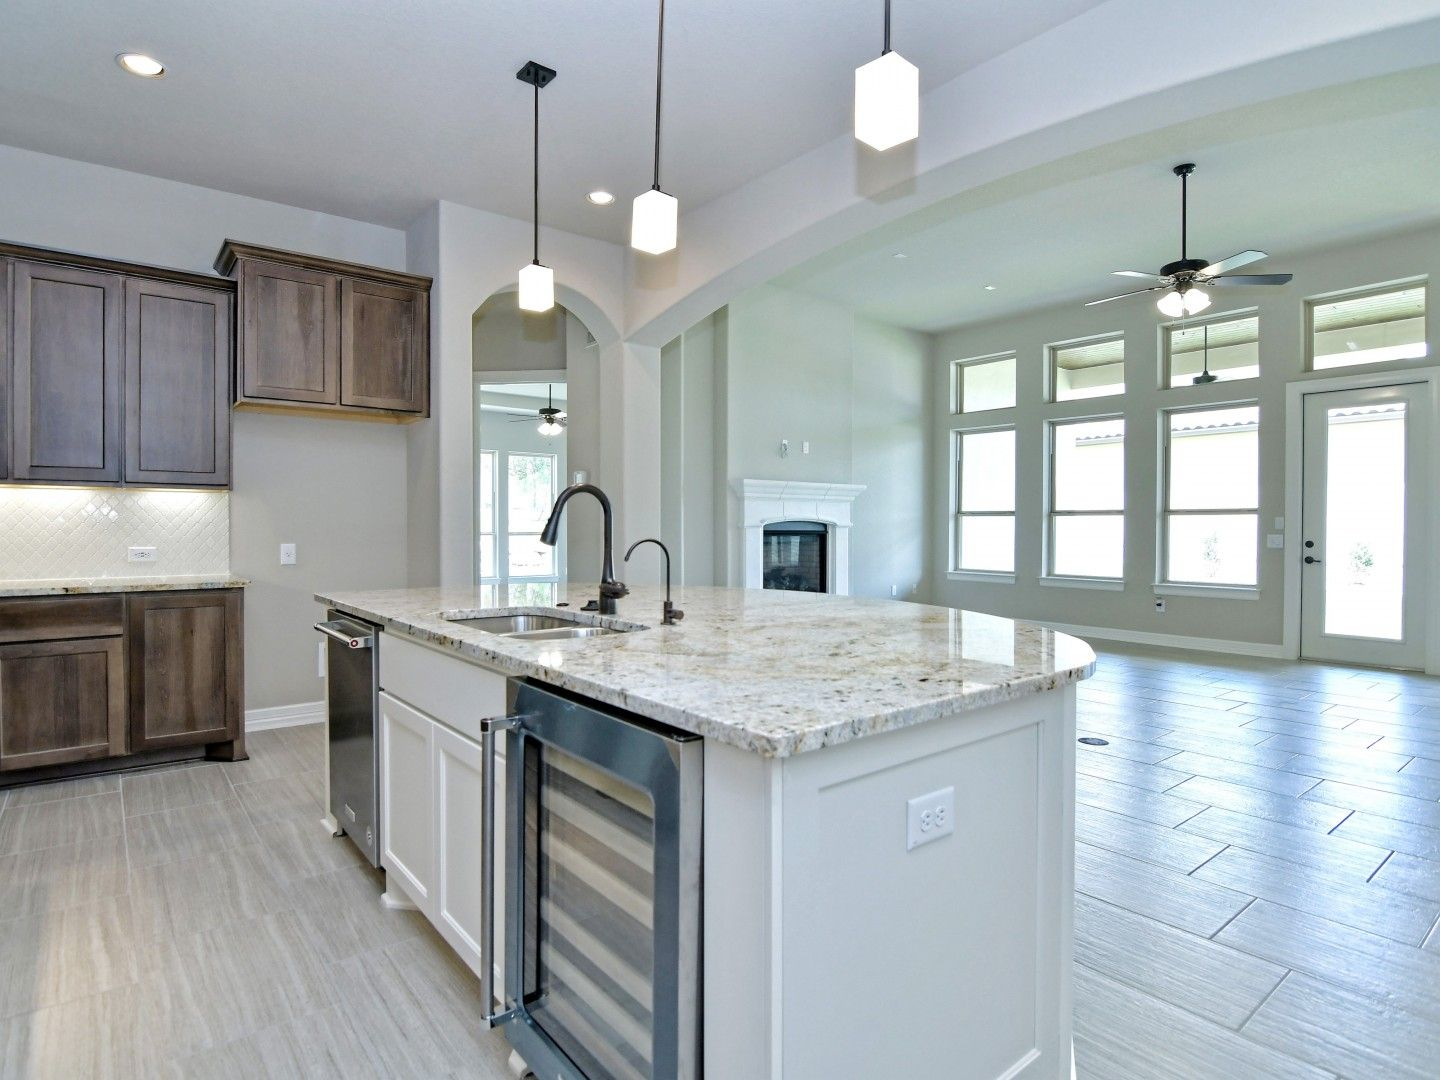 Kitchen featured in the Montava By Sitterle Homes in San Antonio, TX